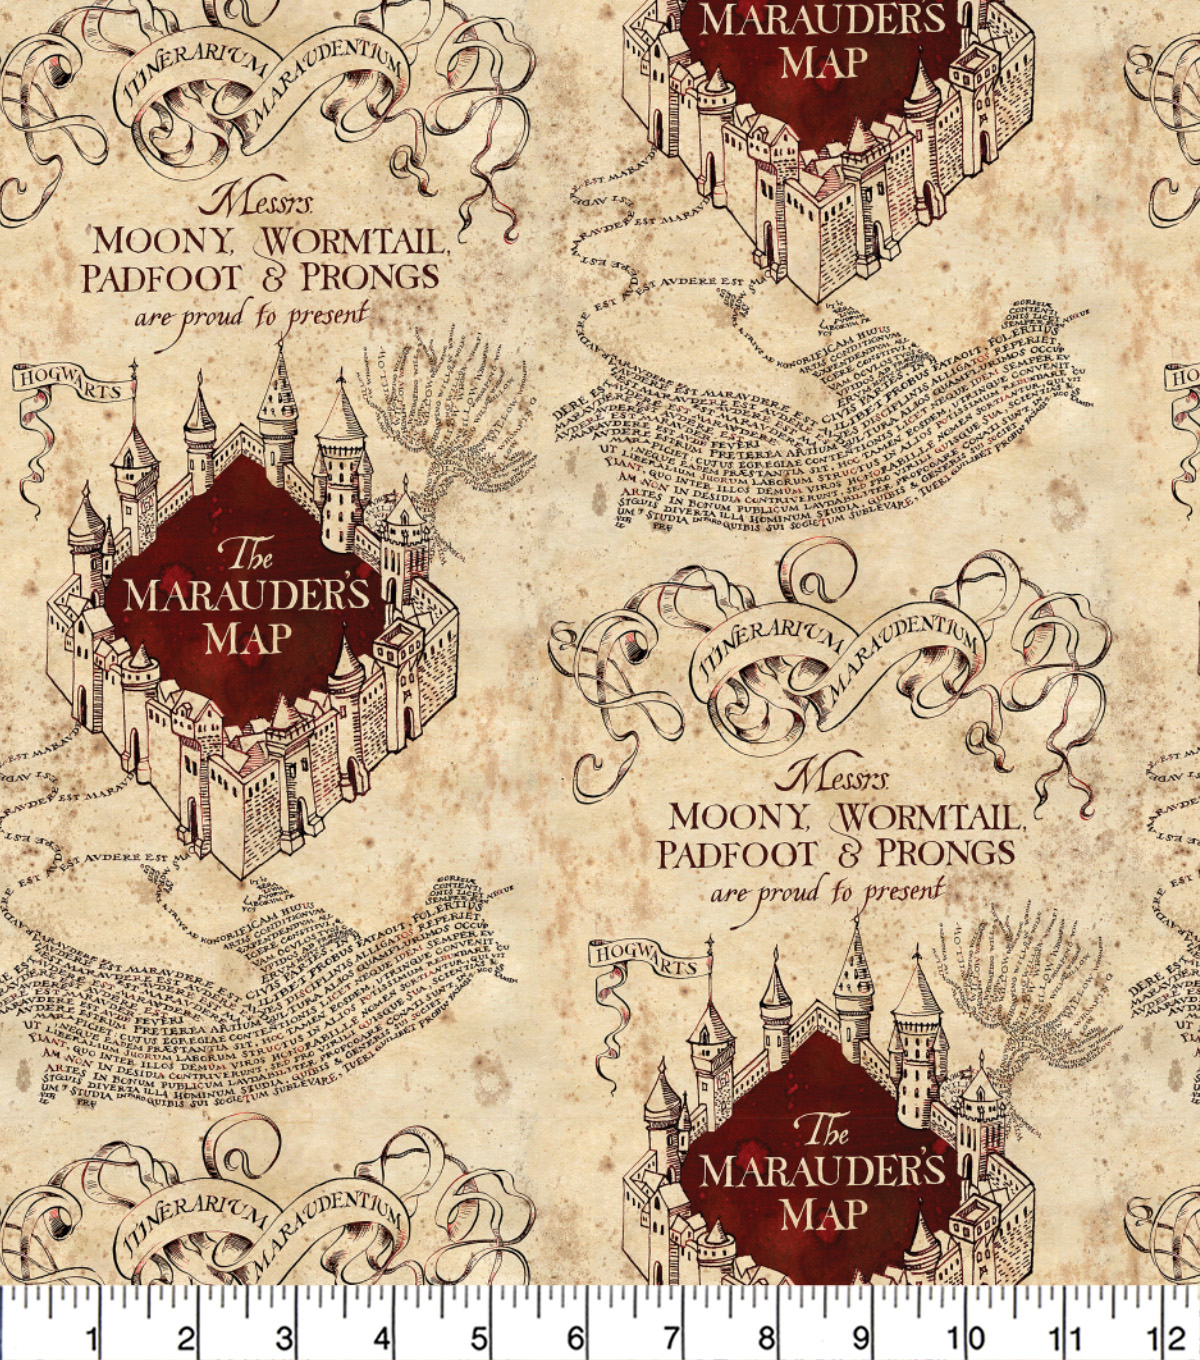 photo relating to Harry Potter Marauders Map Printable titled Harry Potter Knit Material 58-Marauders Map